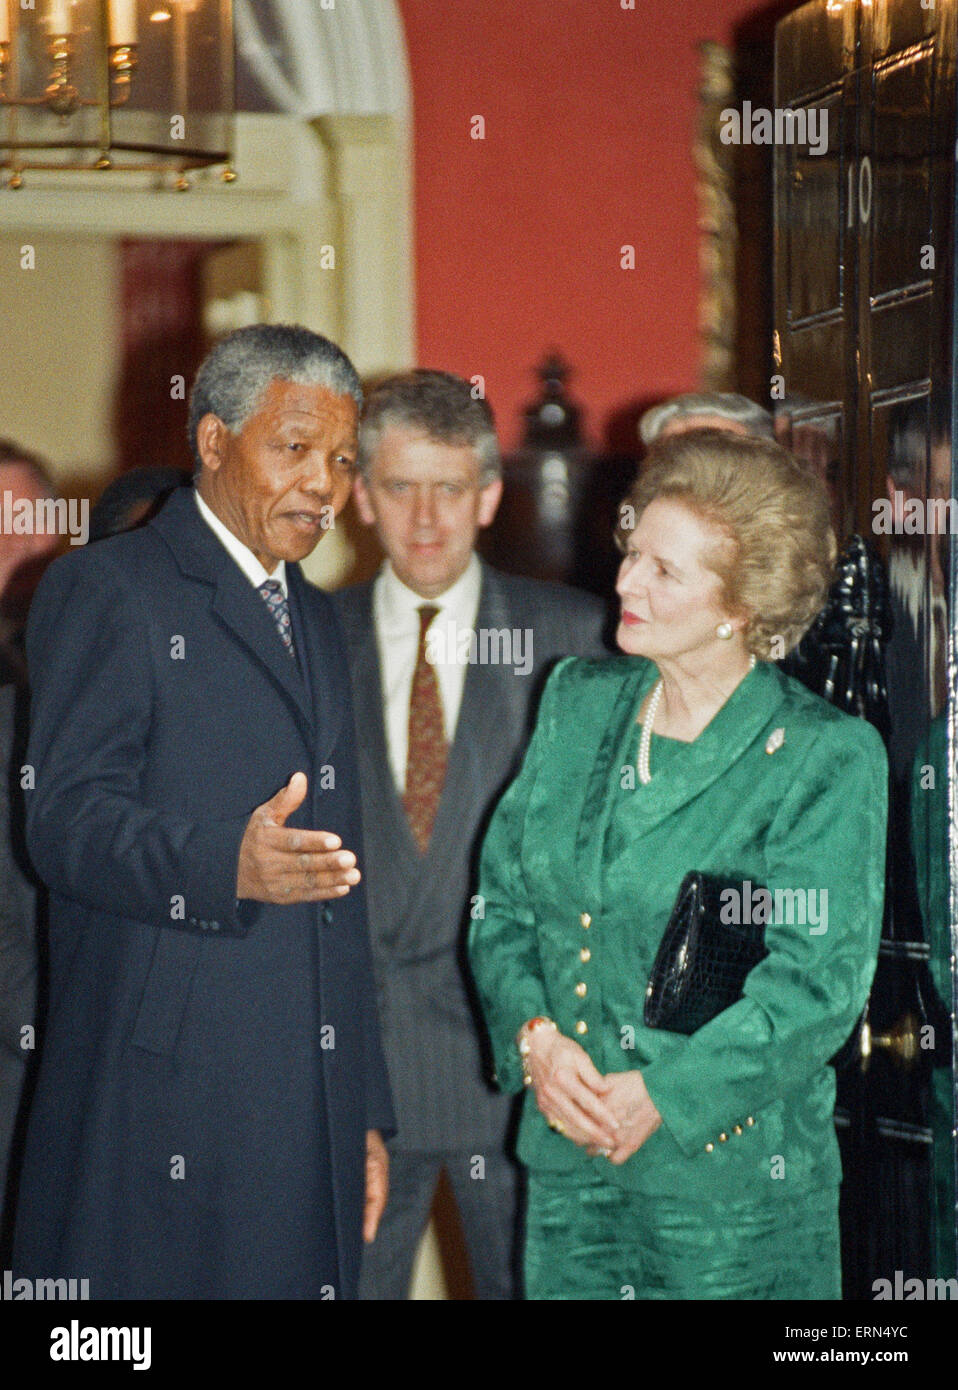 Nelson Mandela meets Margret Thatcher at No.10 Downing Street. July 4, 1990 - Stock Image